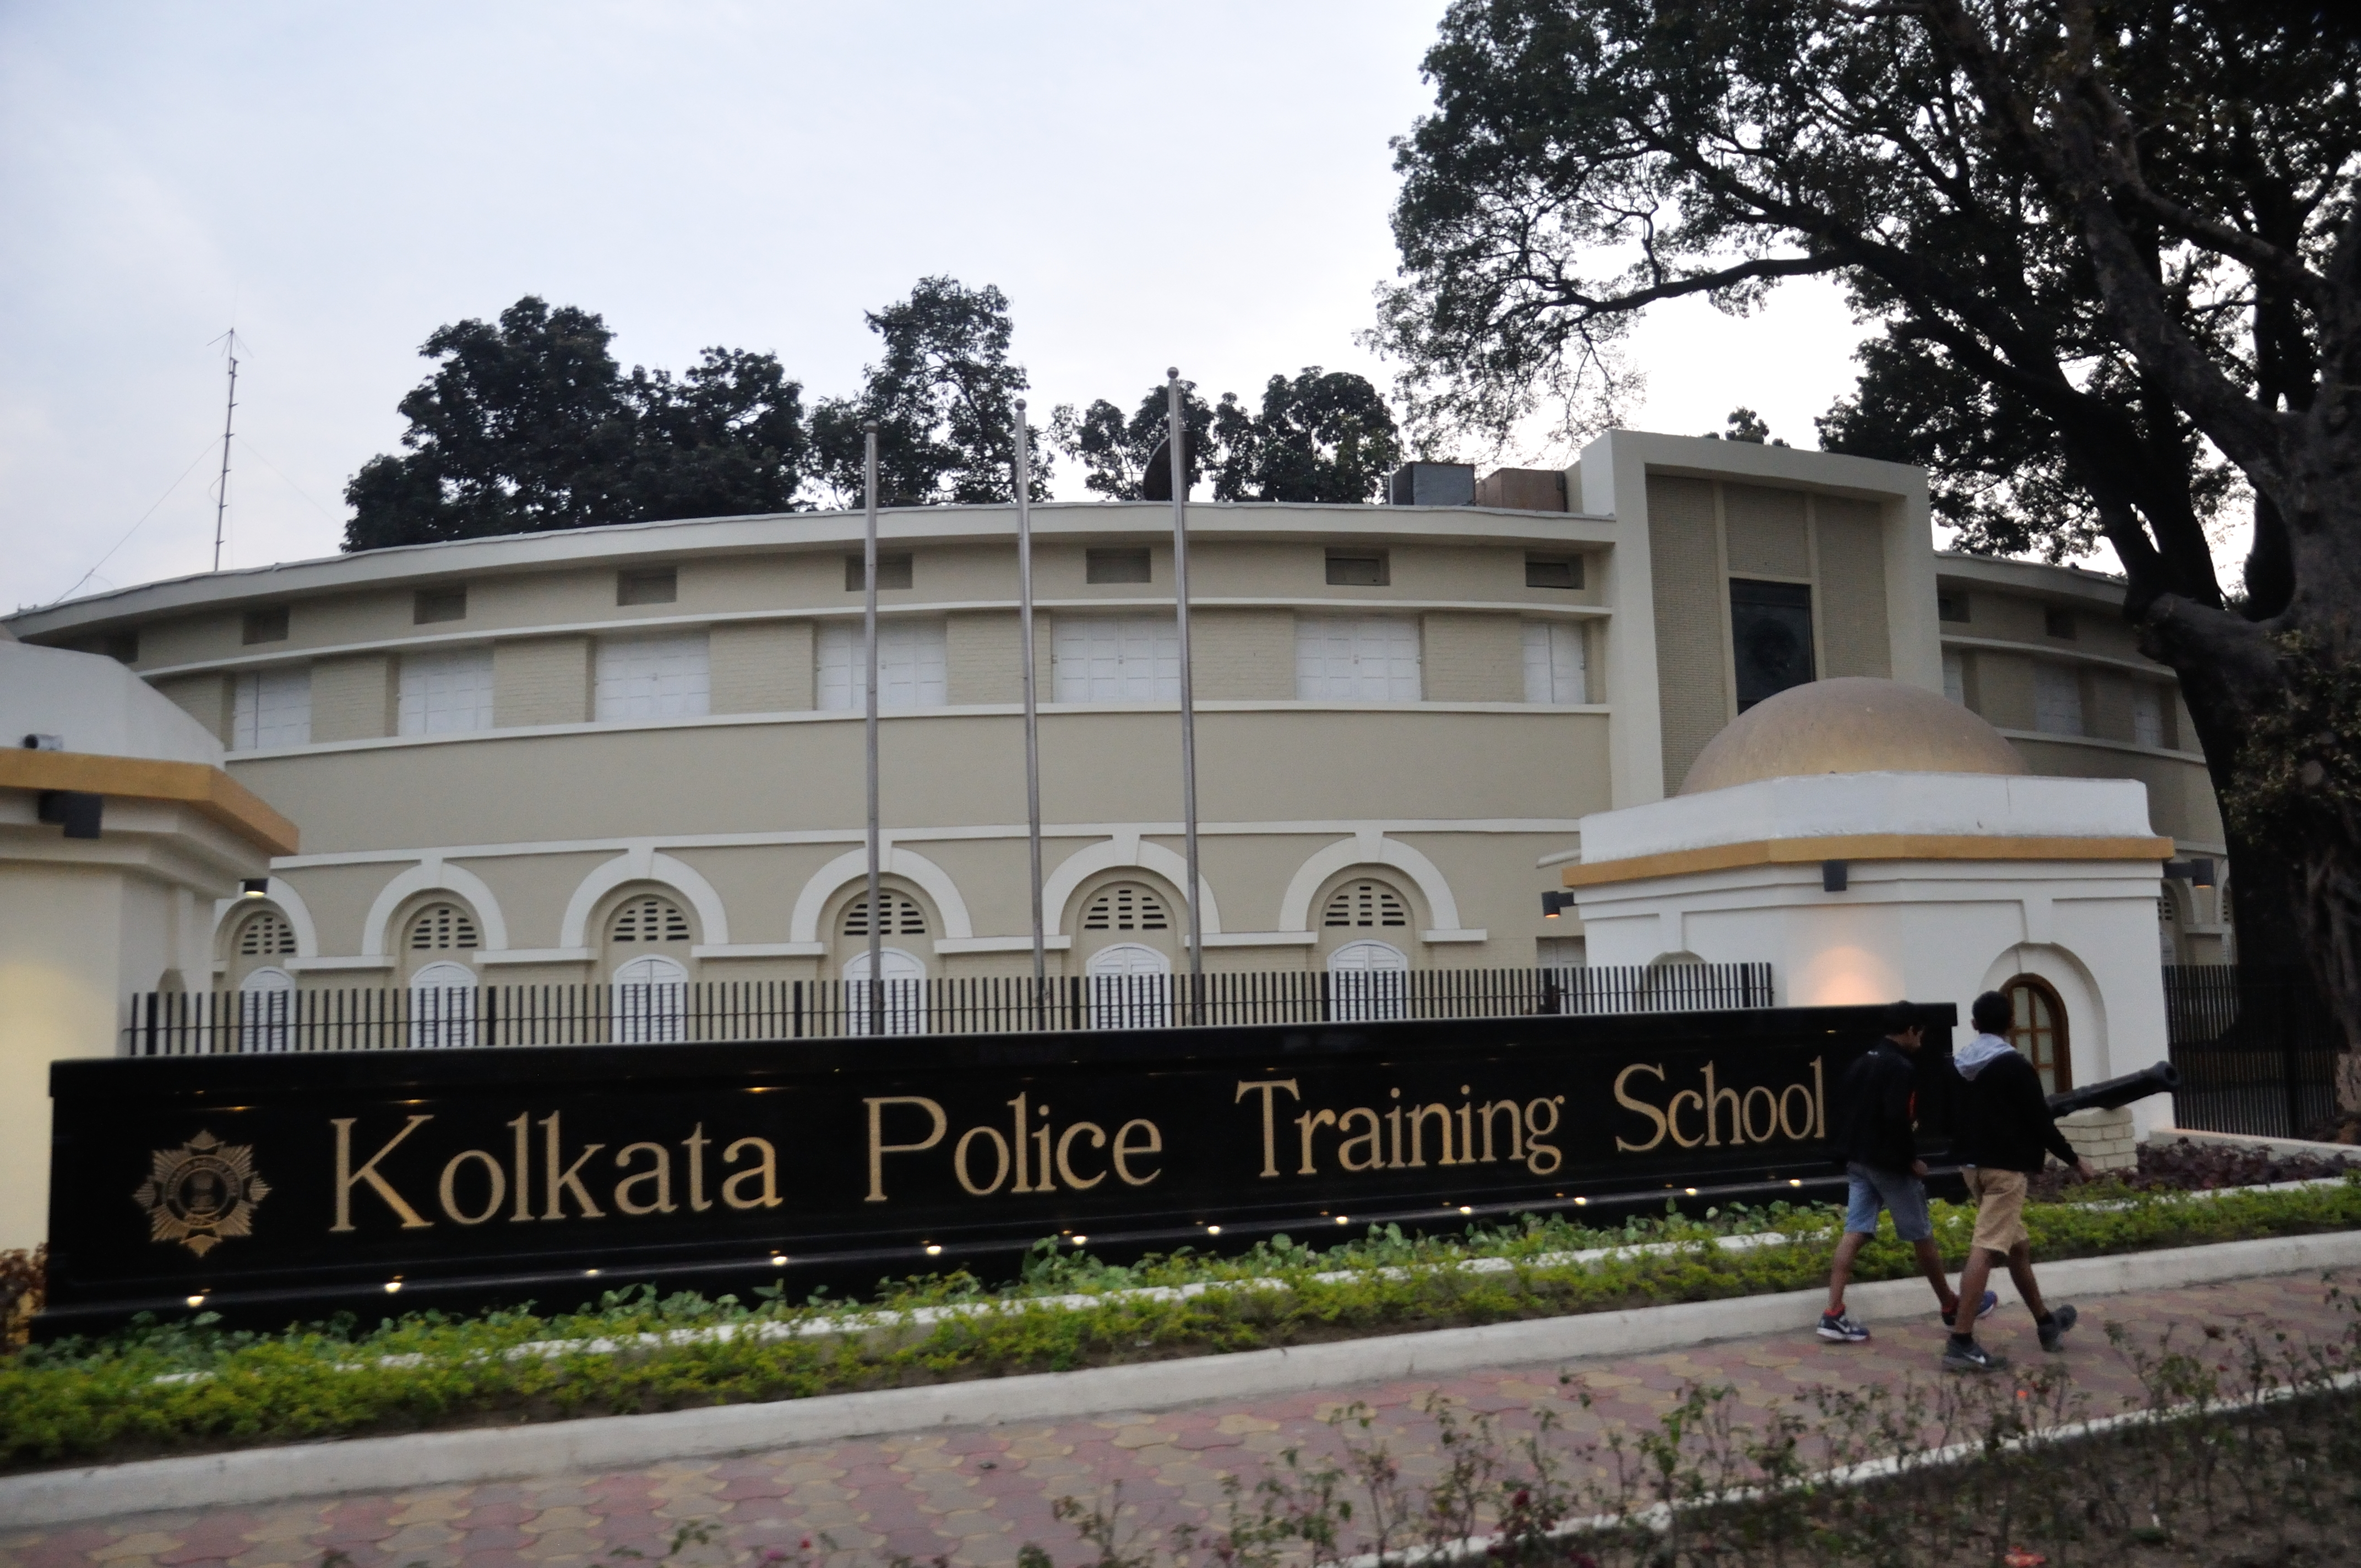 file police training school 247 ajc bose road kolkata 2015 02 07